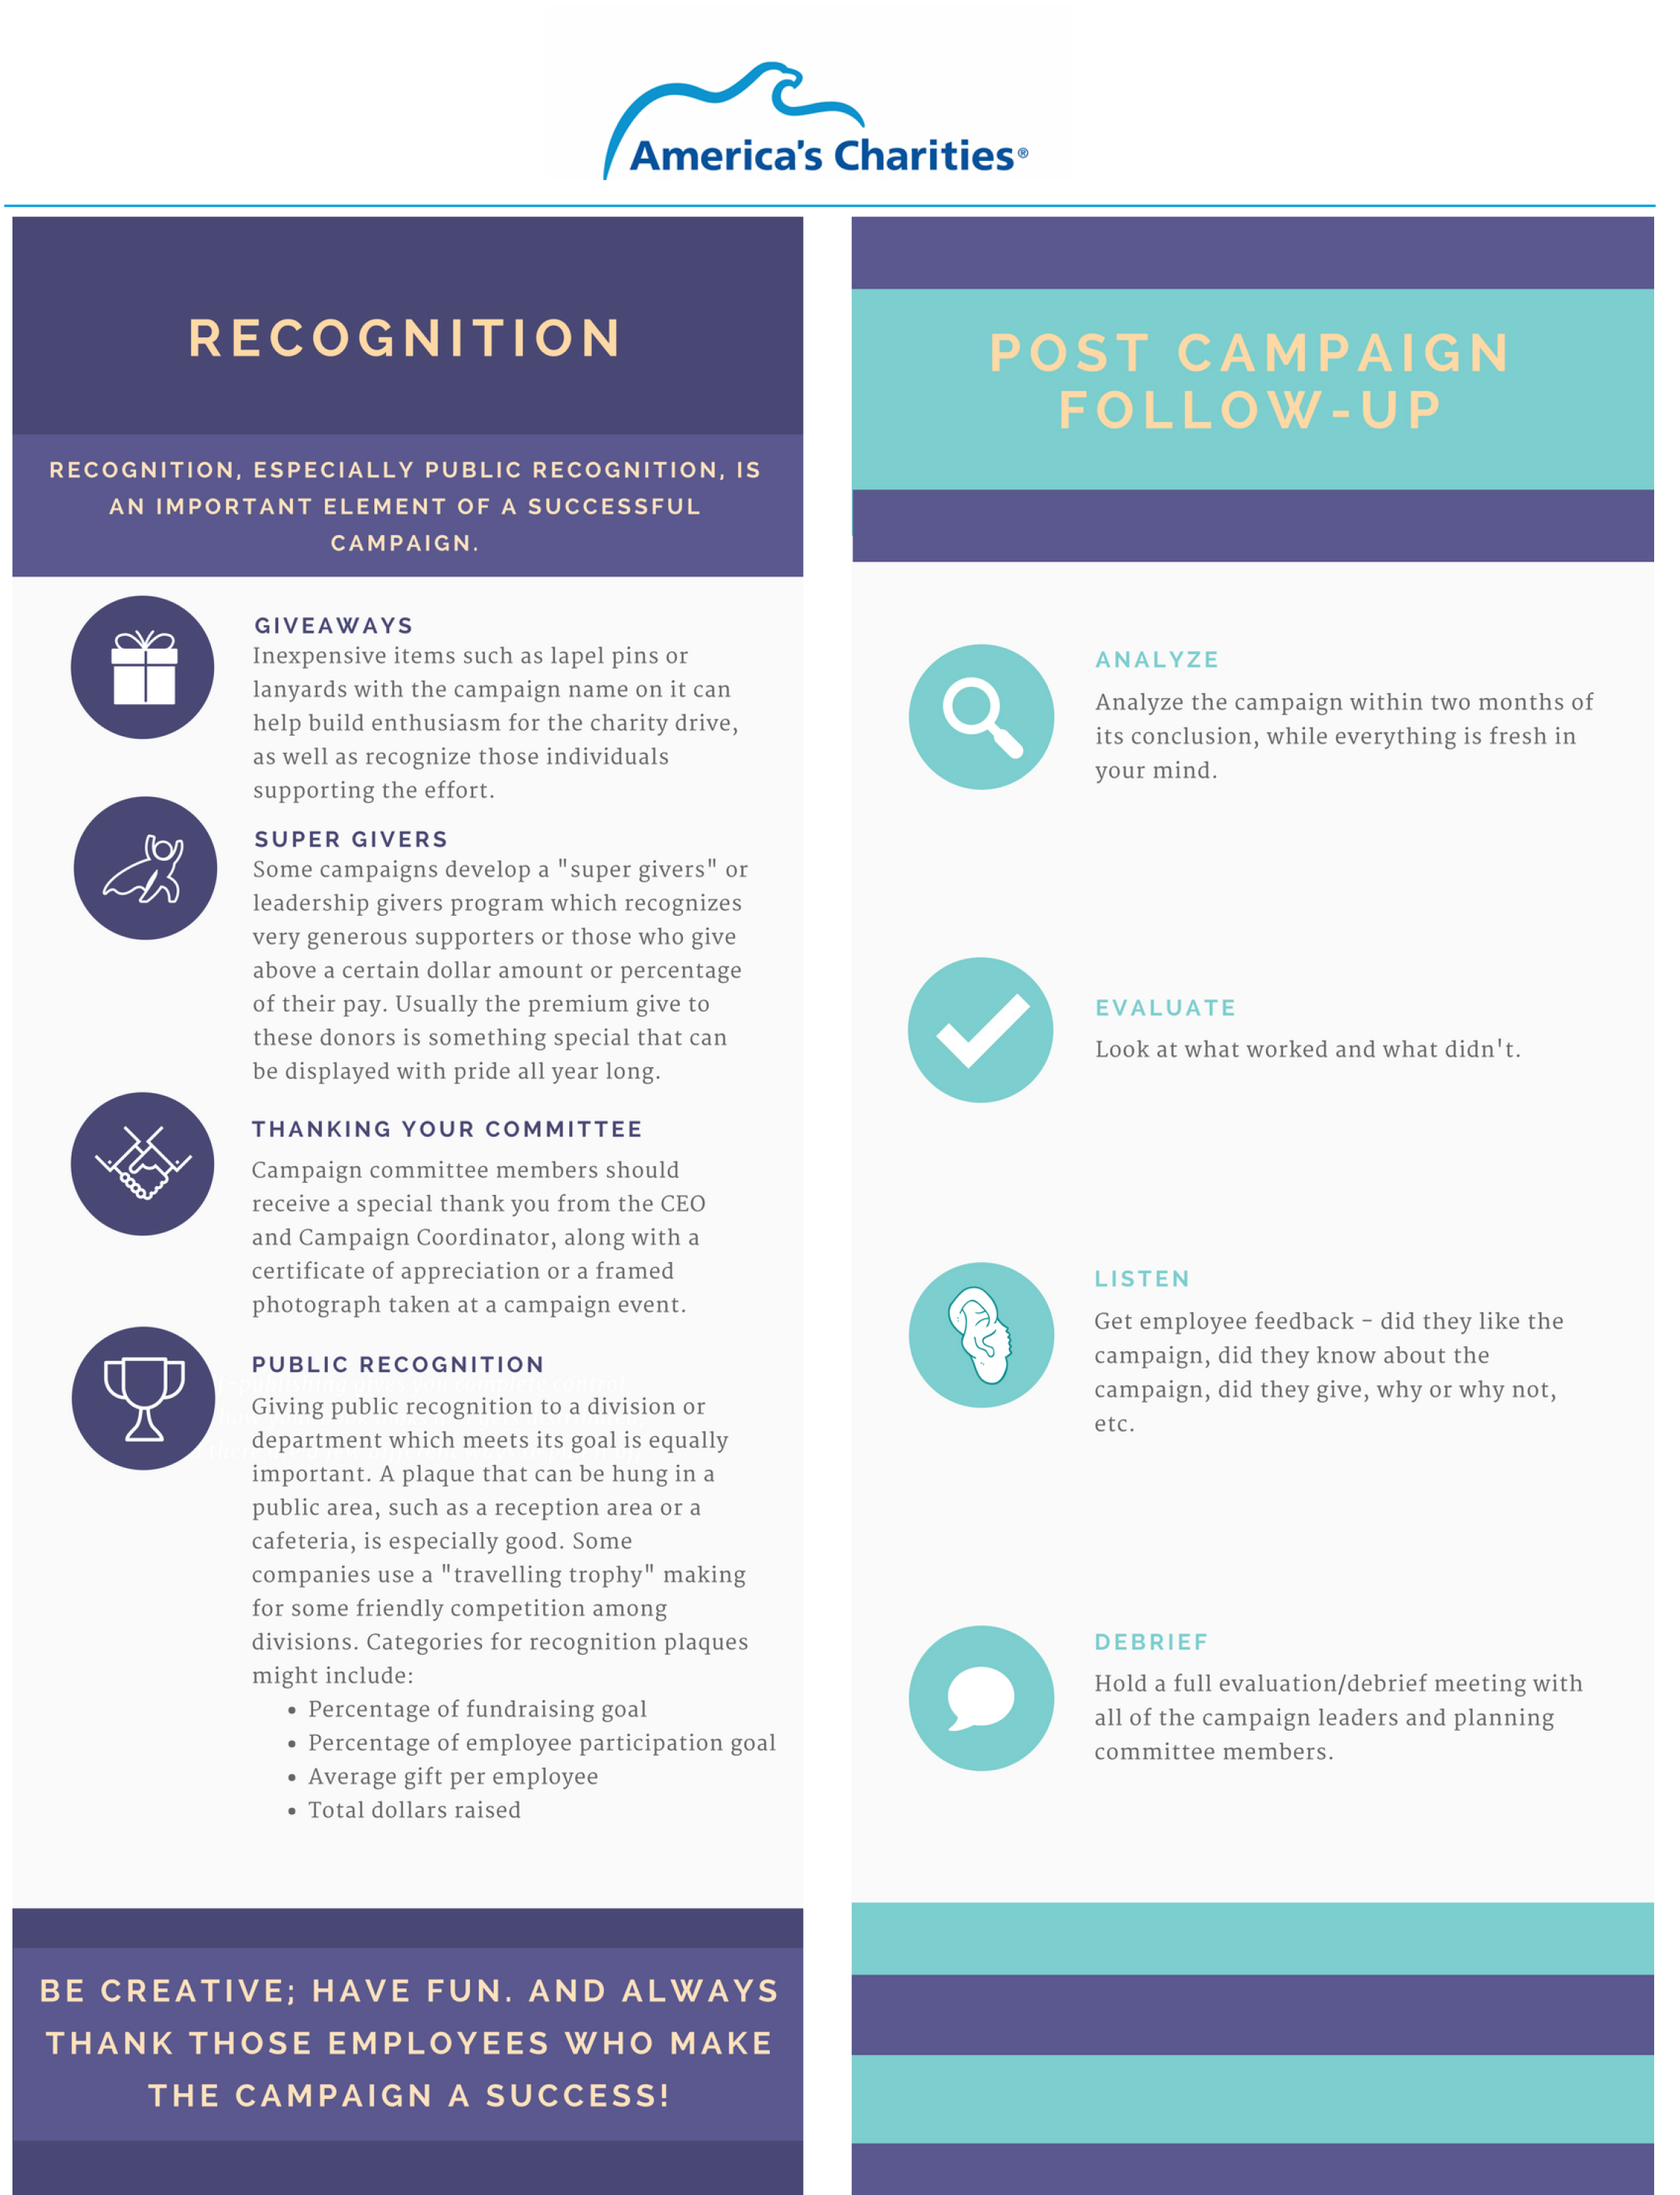 Employee Recognition and Post-Workplace Giving Campaign Follow Up